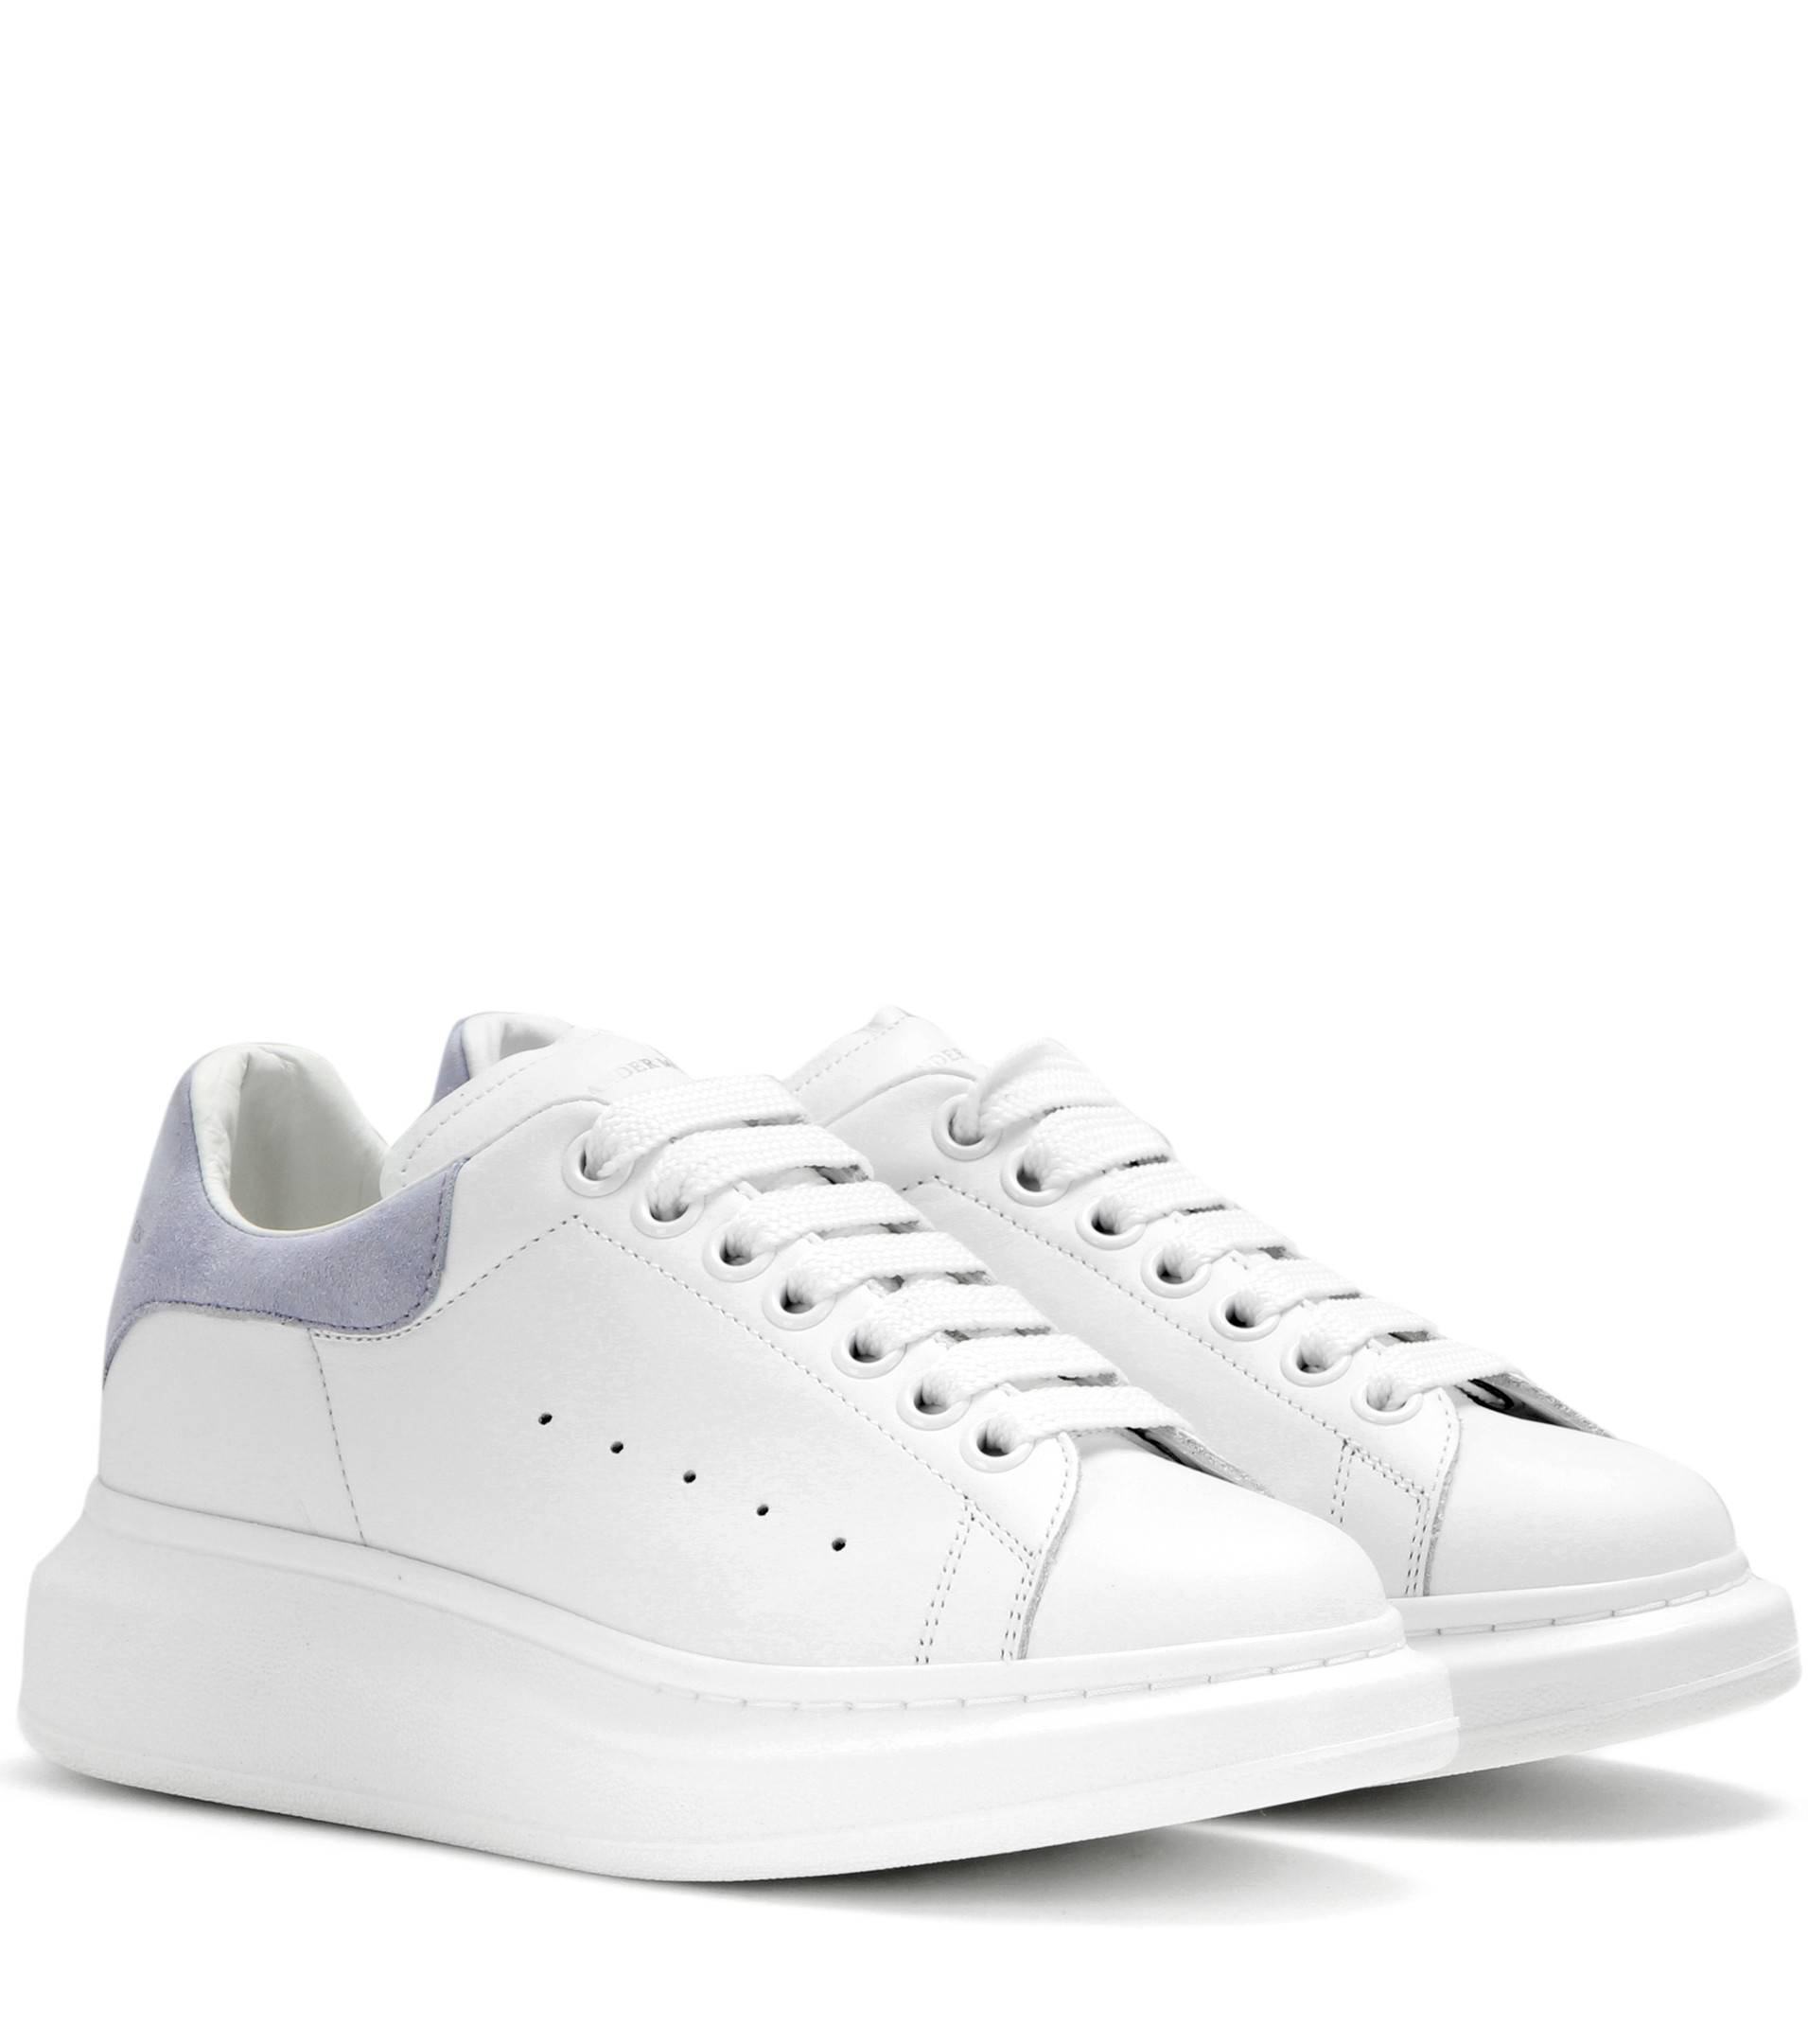 lyst alexander mcqueen leather and suede sneakers in white. Black Bedroom Furniture Sets. Home Design Ideas